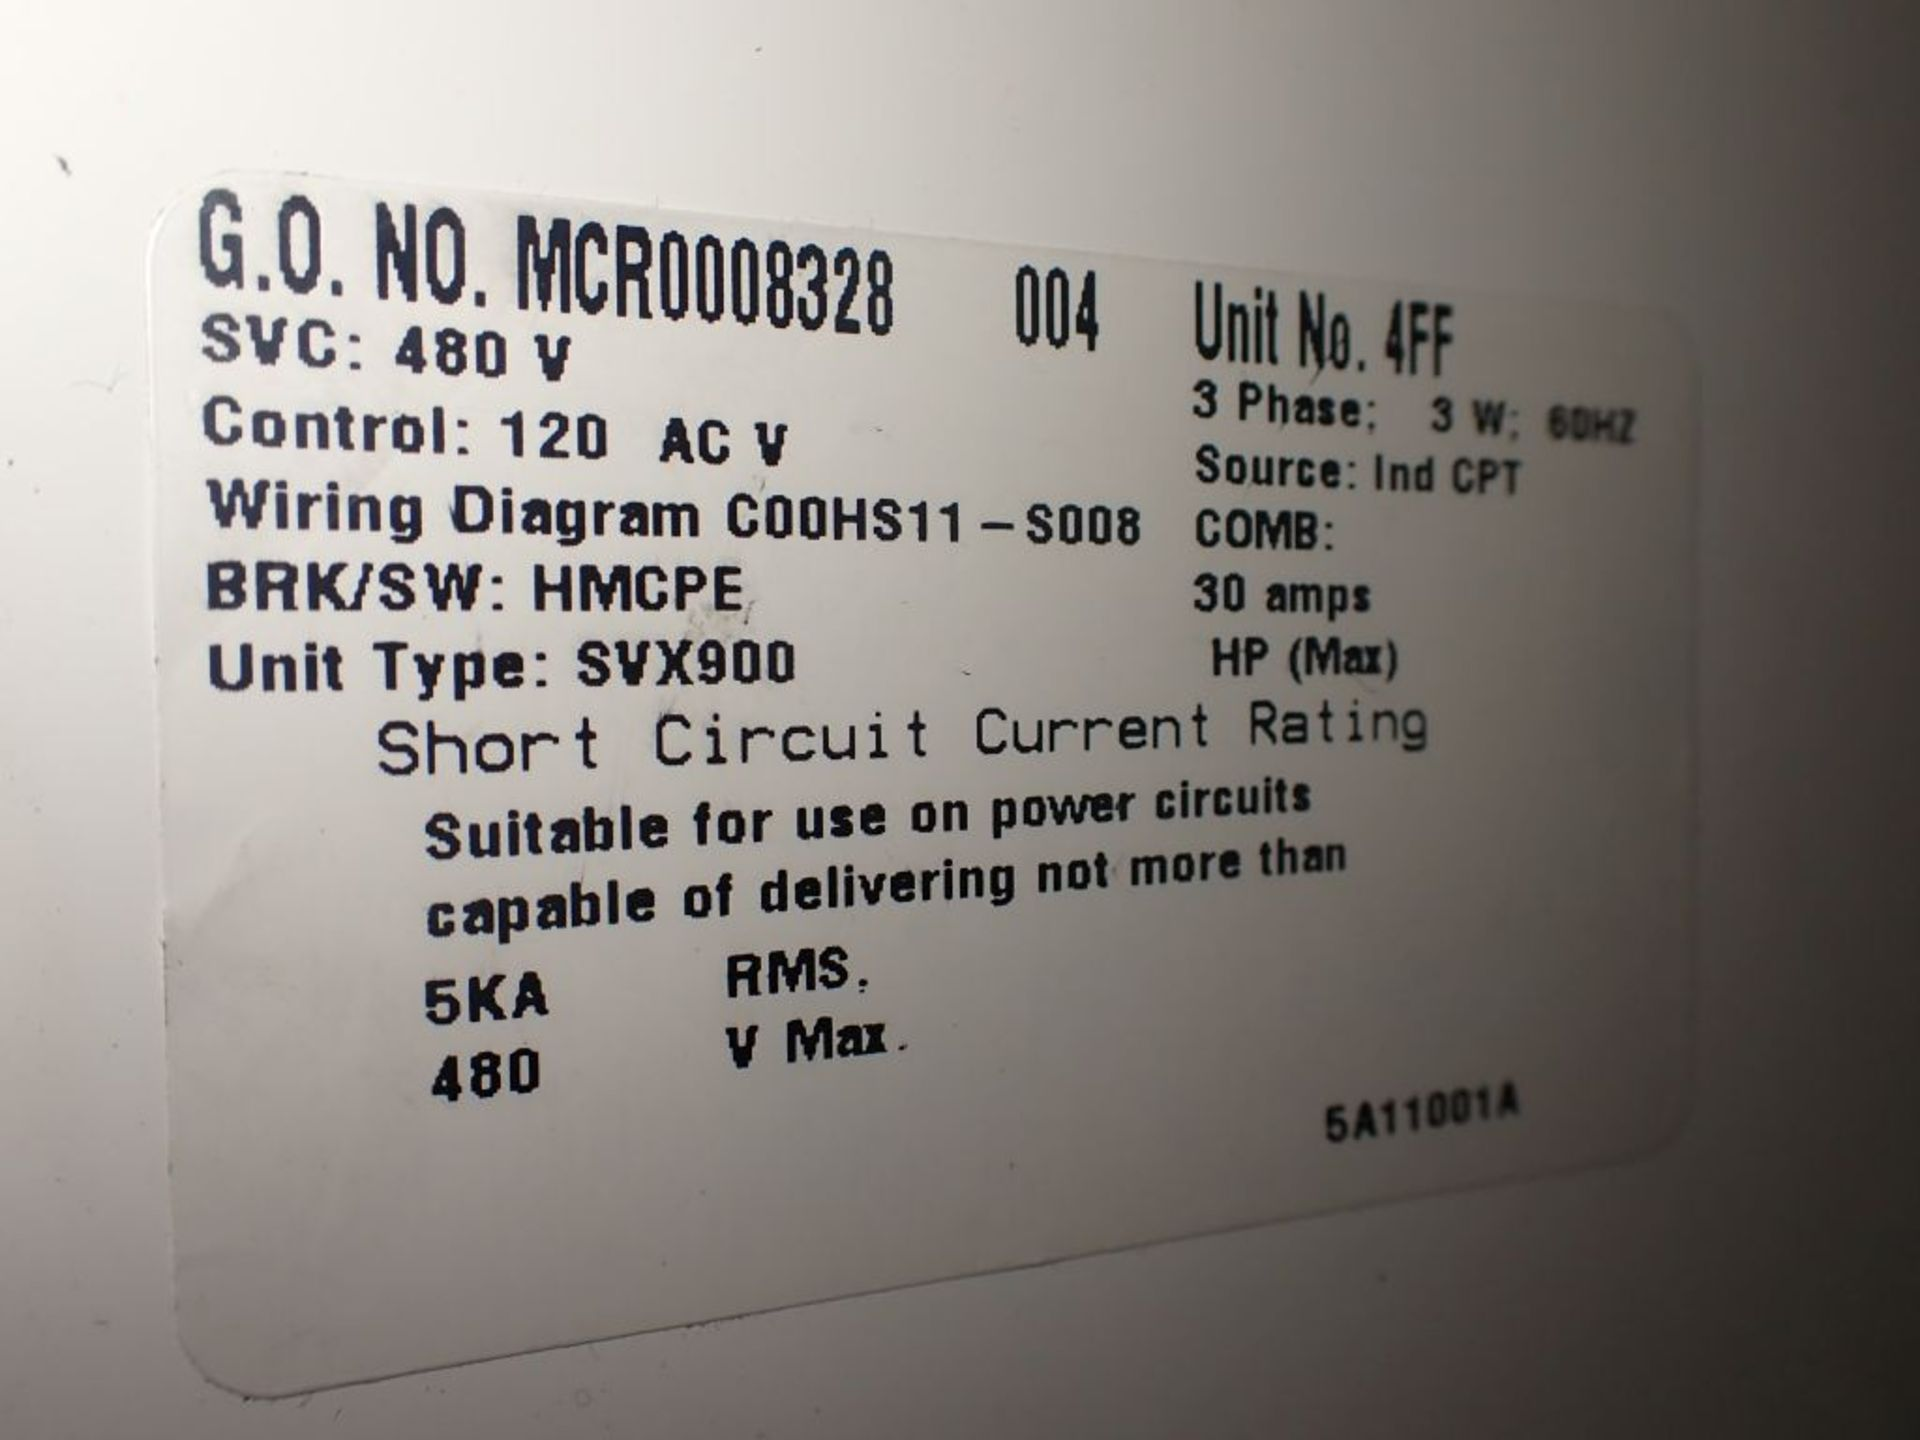 Eaton Freedom 2100 Series Motor Control Center | (2) F206-7A-10HP; (3) F206-15A-10HP; (1) FDRB-100A; - Image 26 of 87